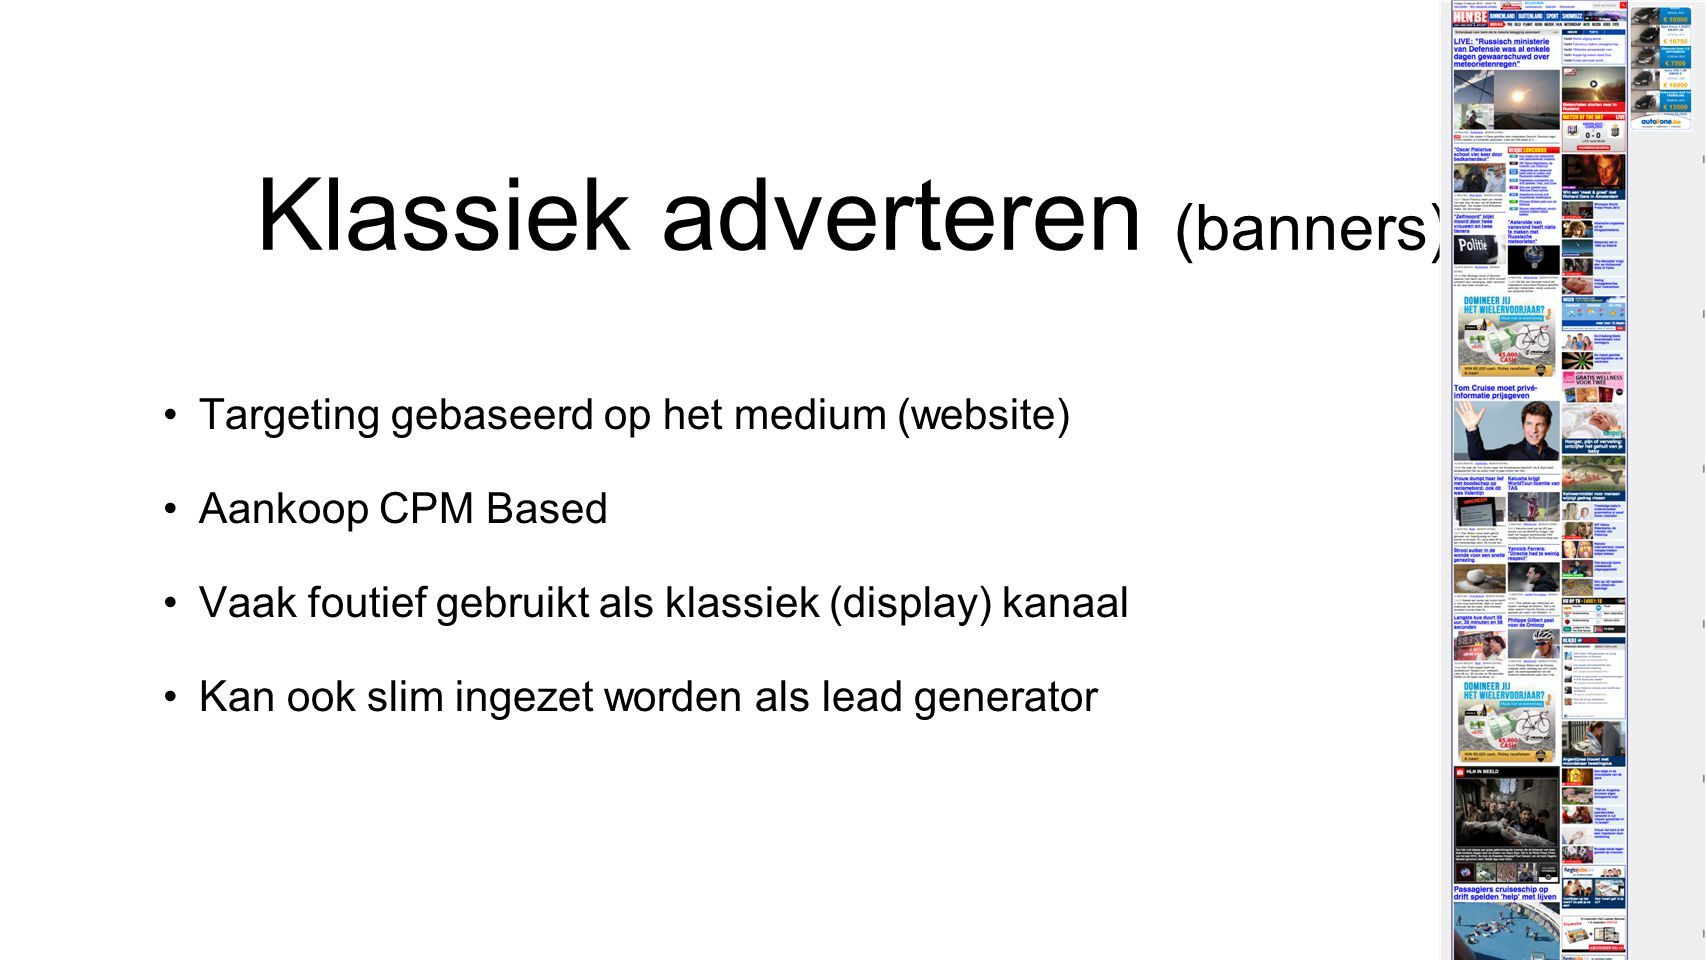 Klassiek adverteren (banners)